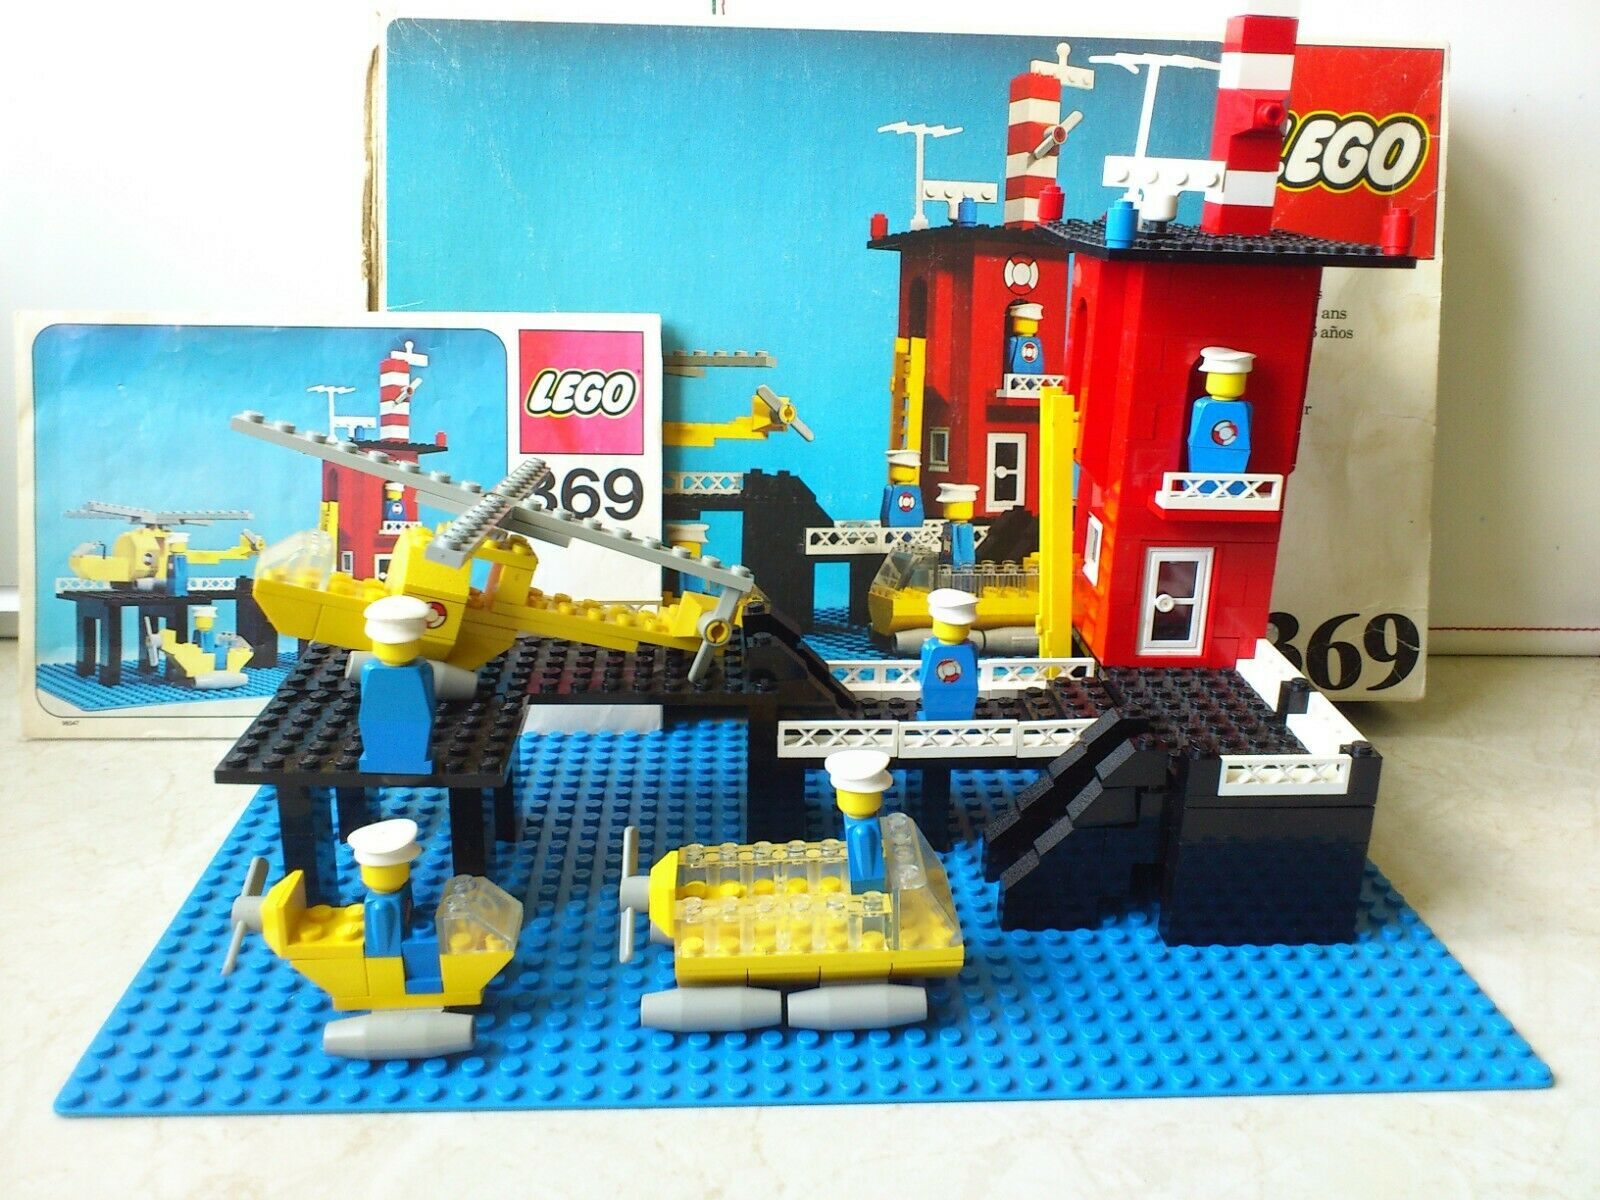 Vintage Lego set no 369 from 1976 with original box and manual.